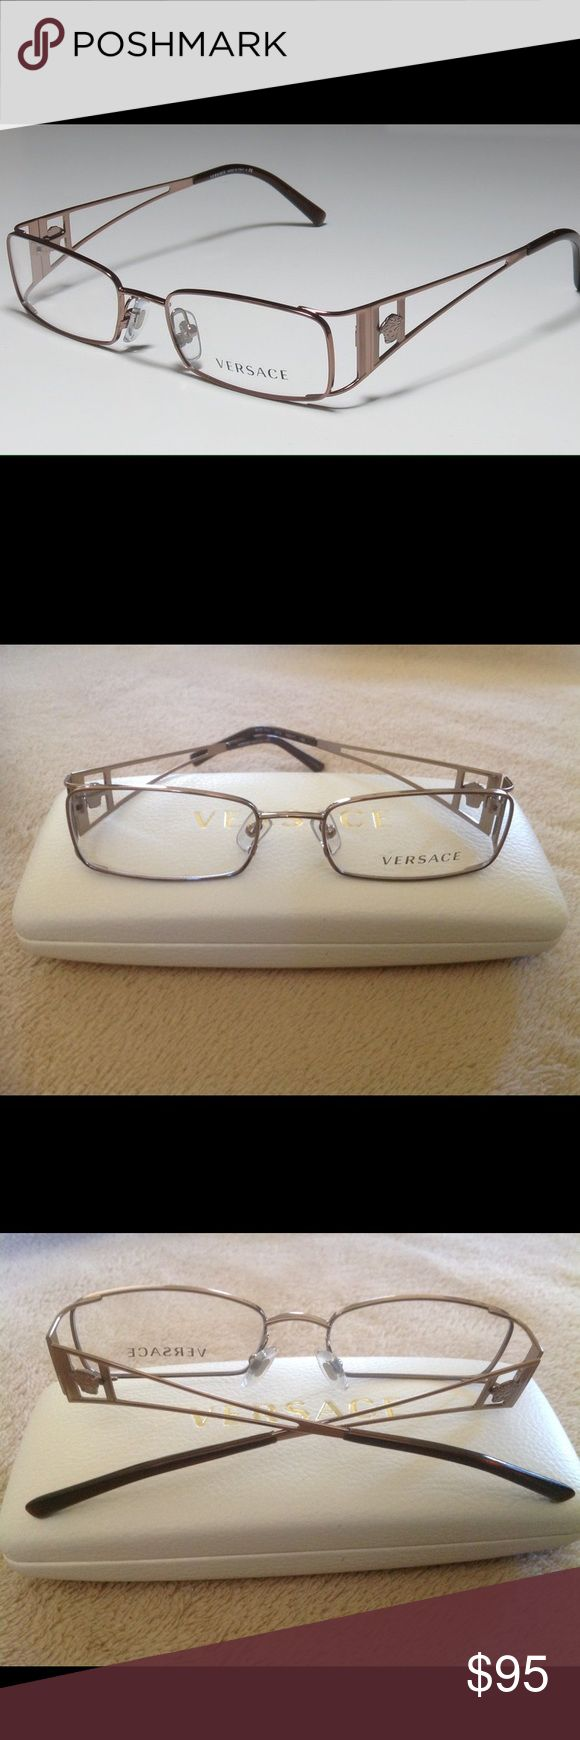 NWOT Women Versace Eyeglasses w/ Case Authentic These ladies eyeglasses are new. They are a metal frame in mocha brown or bronze color. Versace Accessories Glasses